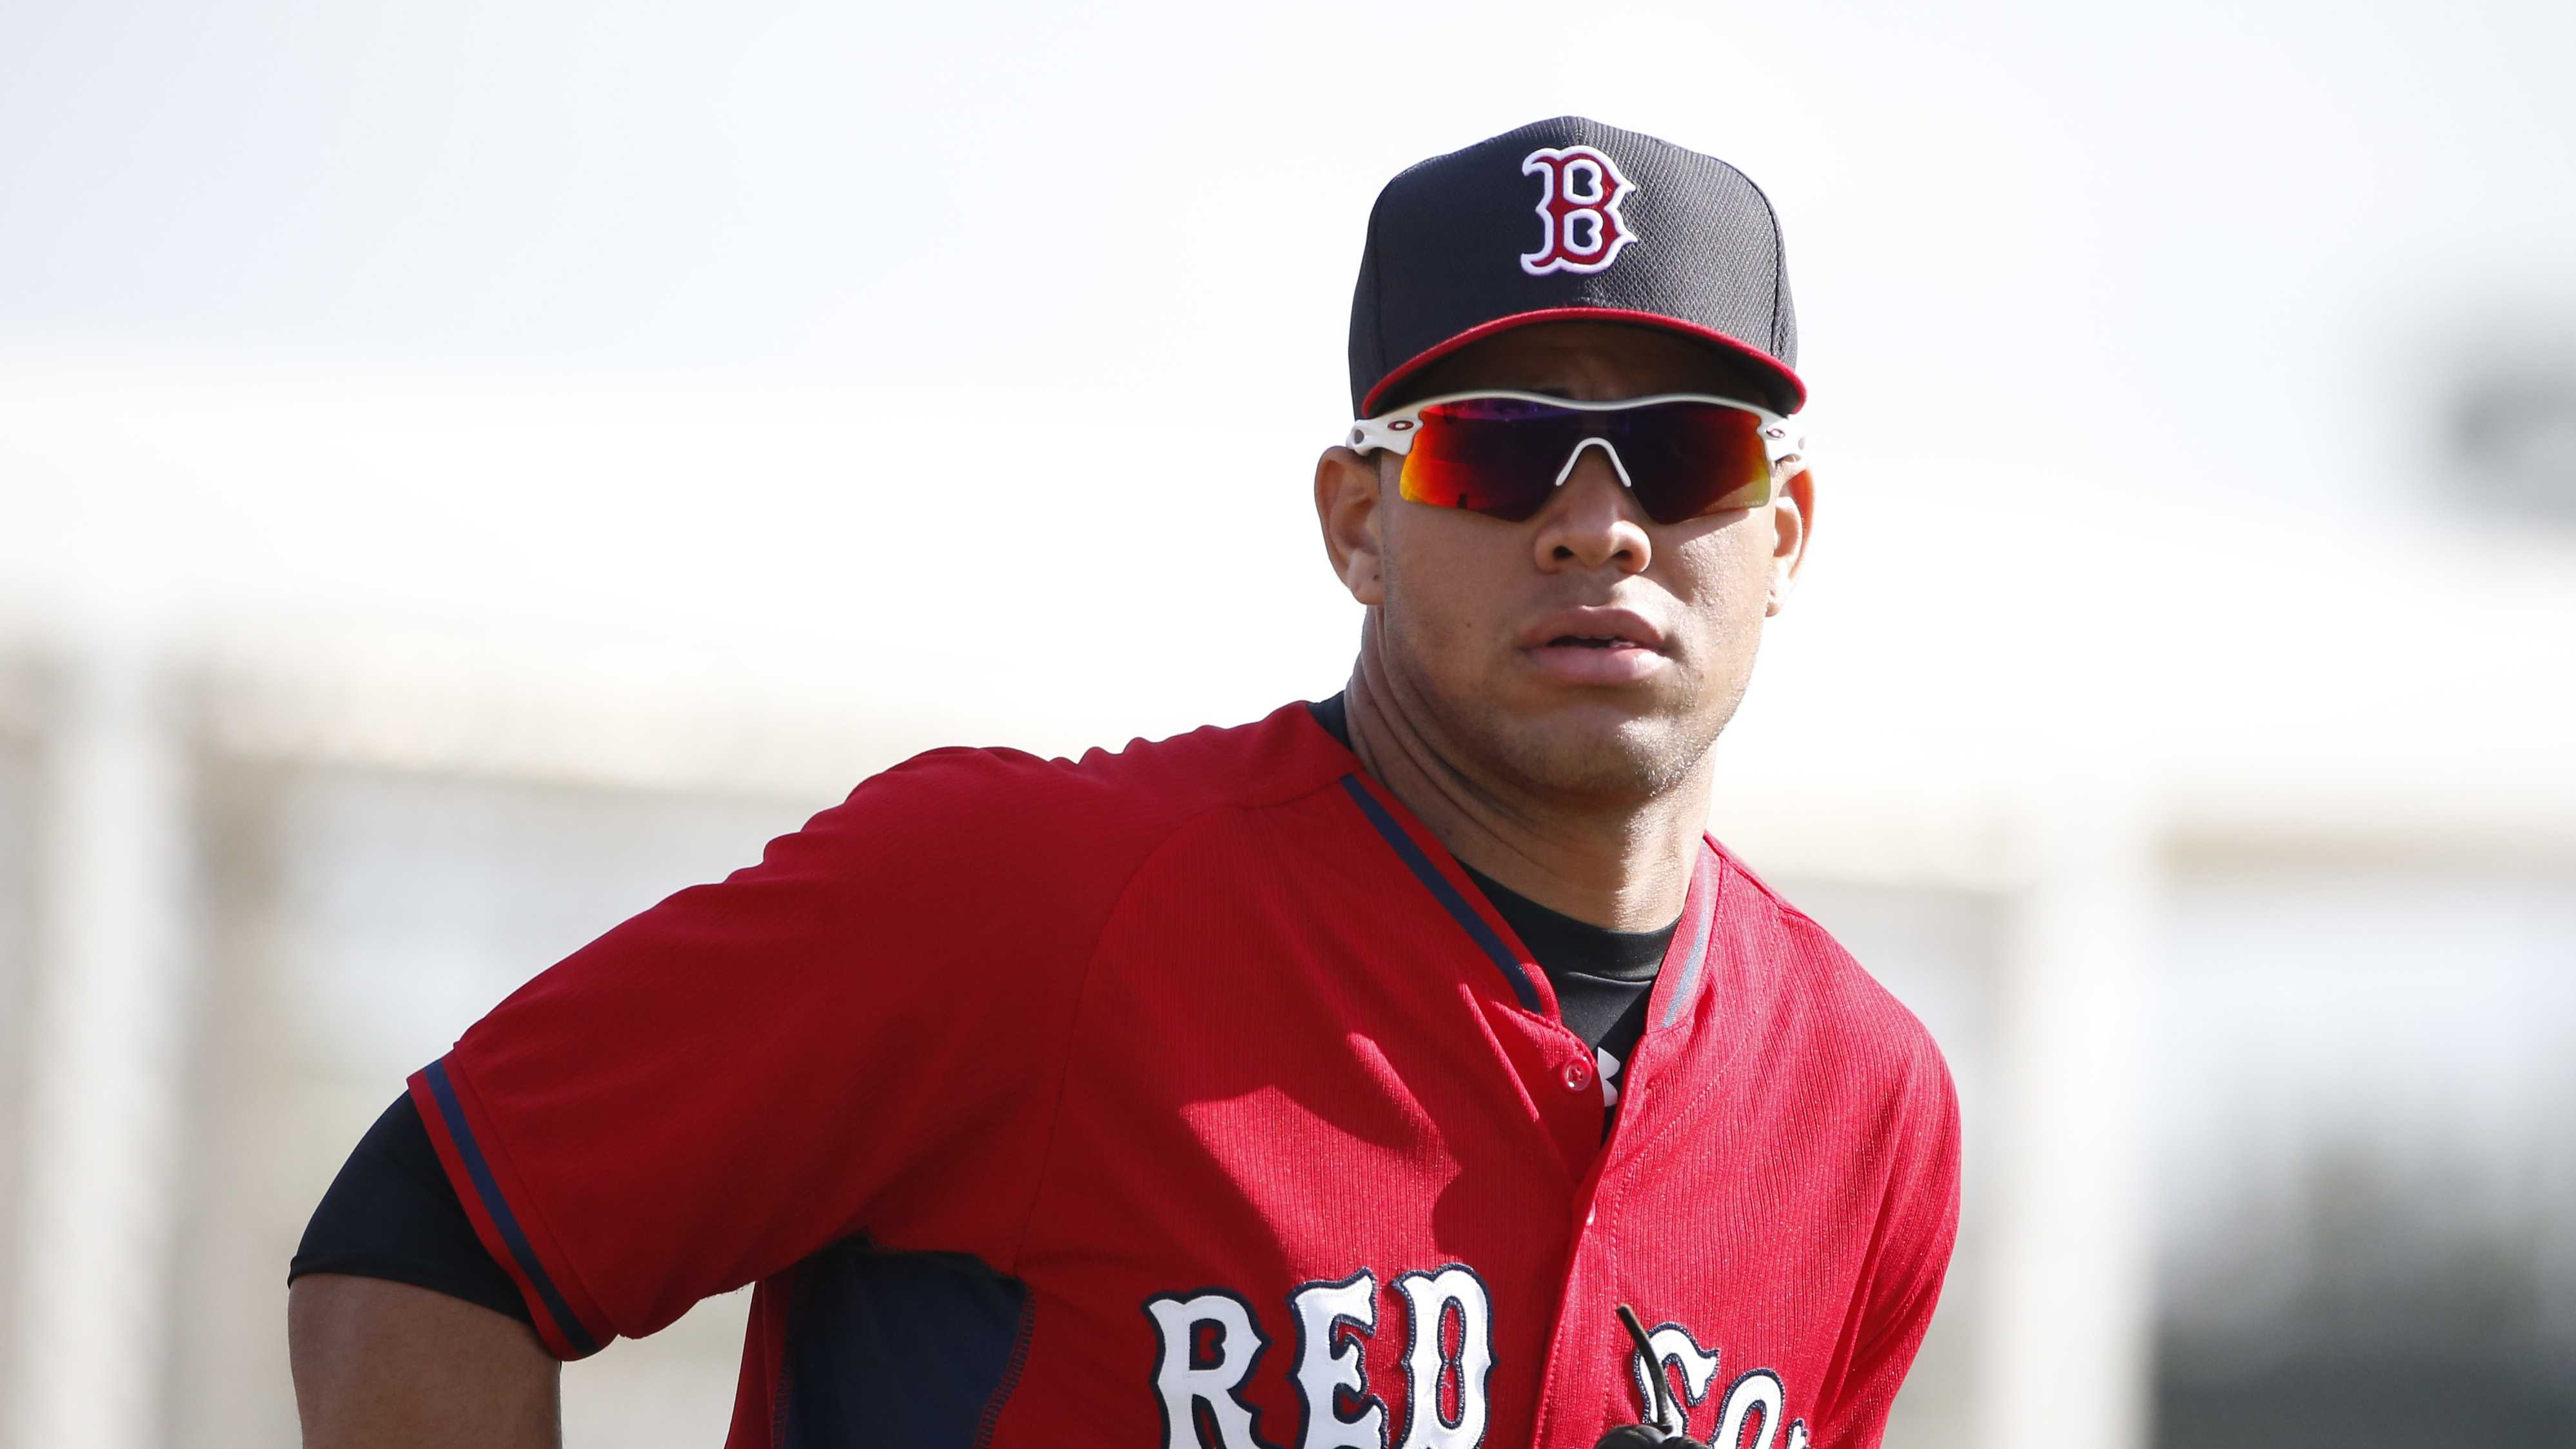 Boston Red Sox' Yoan Moncada practices during spring training, Friday, March 13, 2015, in Fort Myers Fla. The Red Sox have finalized a minor league contract with the 19-year-old Cuban infielder that includes a $31.5 million signing bonus, easily a record for an international amateur free agent under 23 years old.